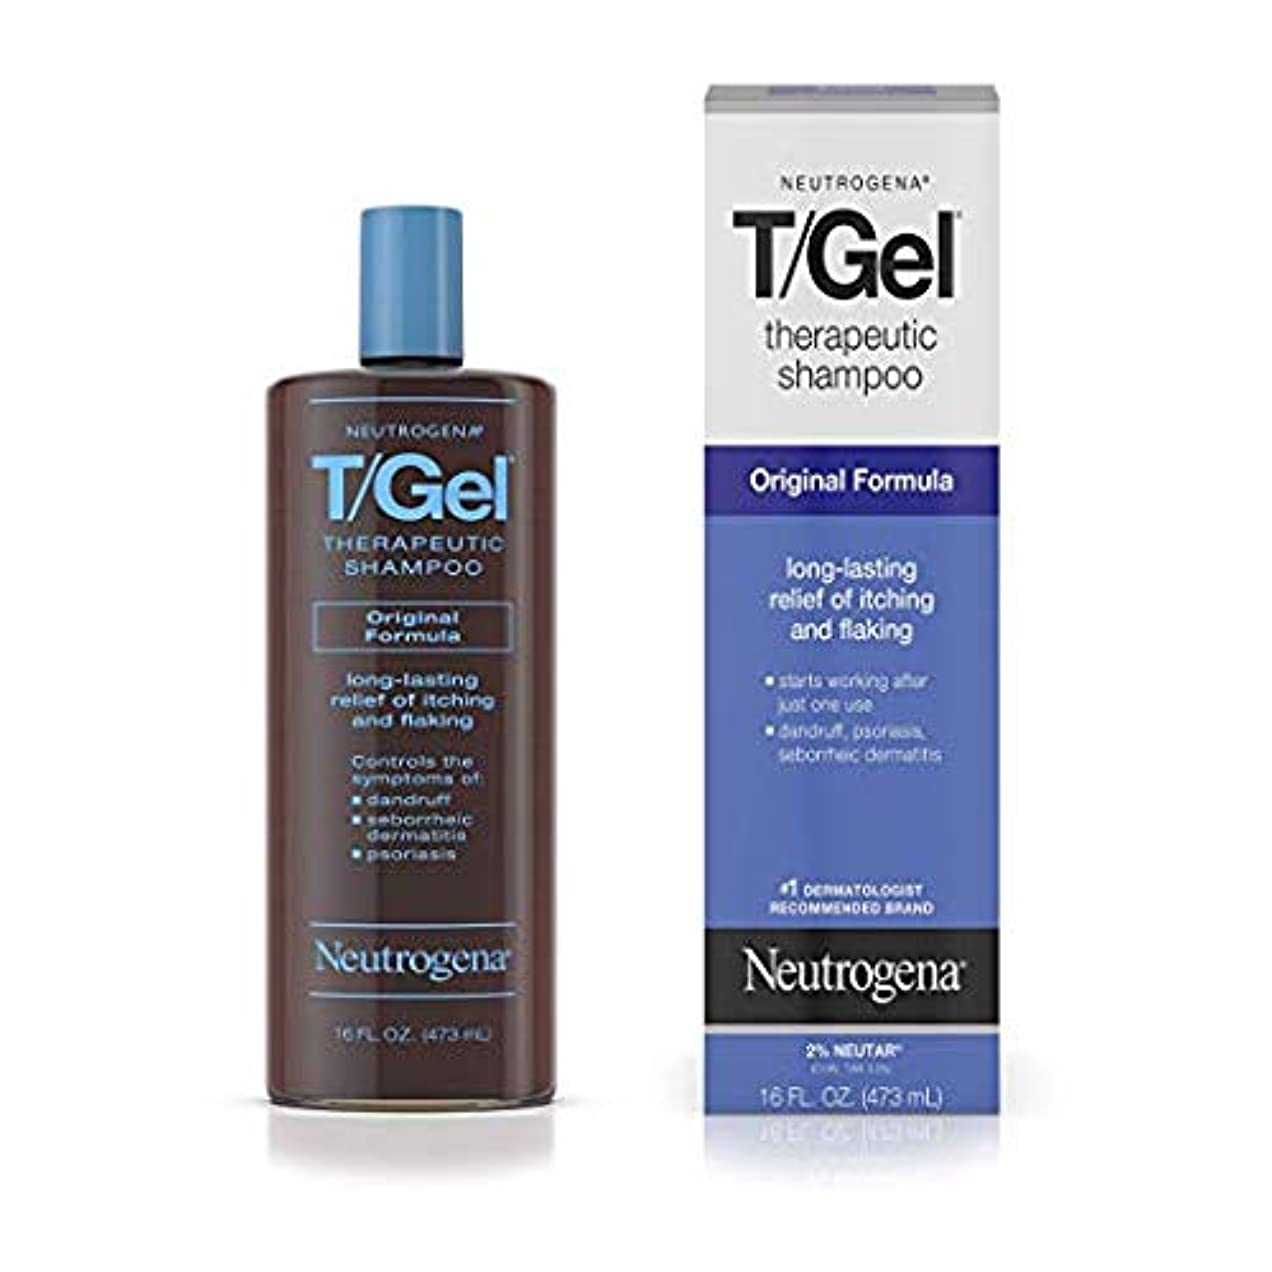 シェル良心ビジネスNeutrogena T/Gel Therapeutic Shampoo Original Formula [並行輸入品]